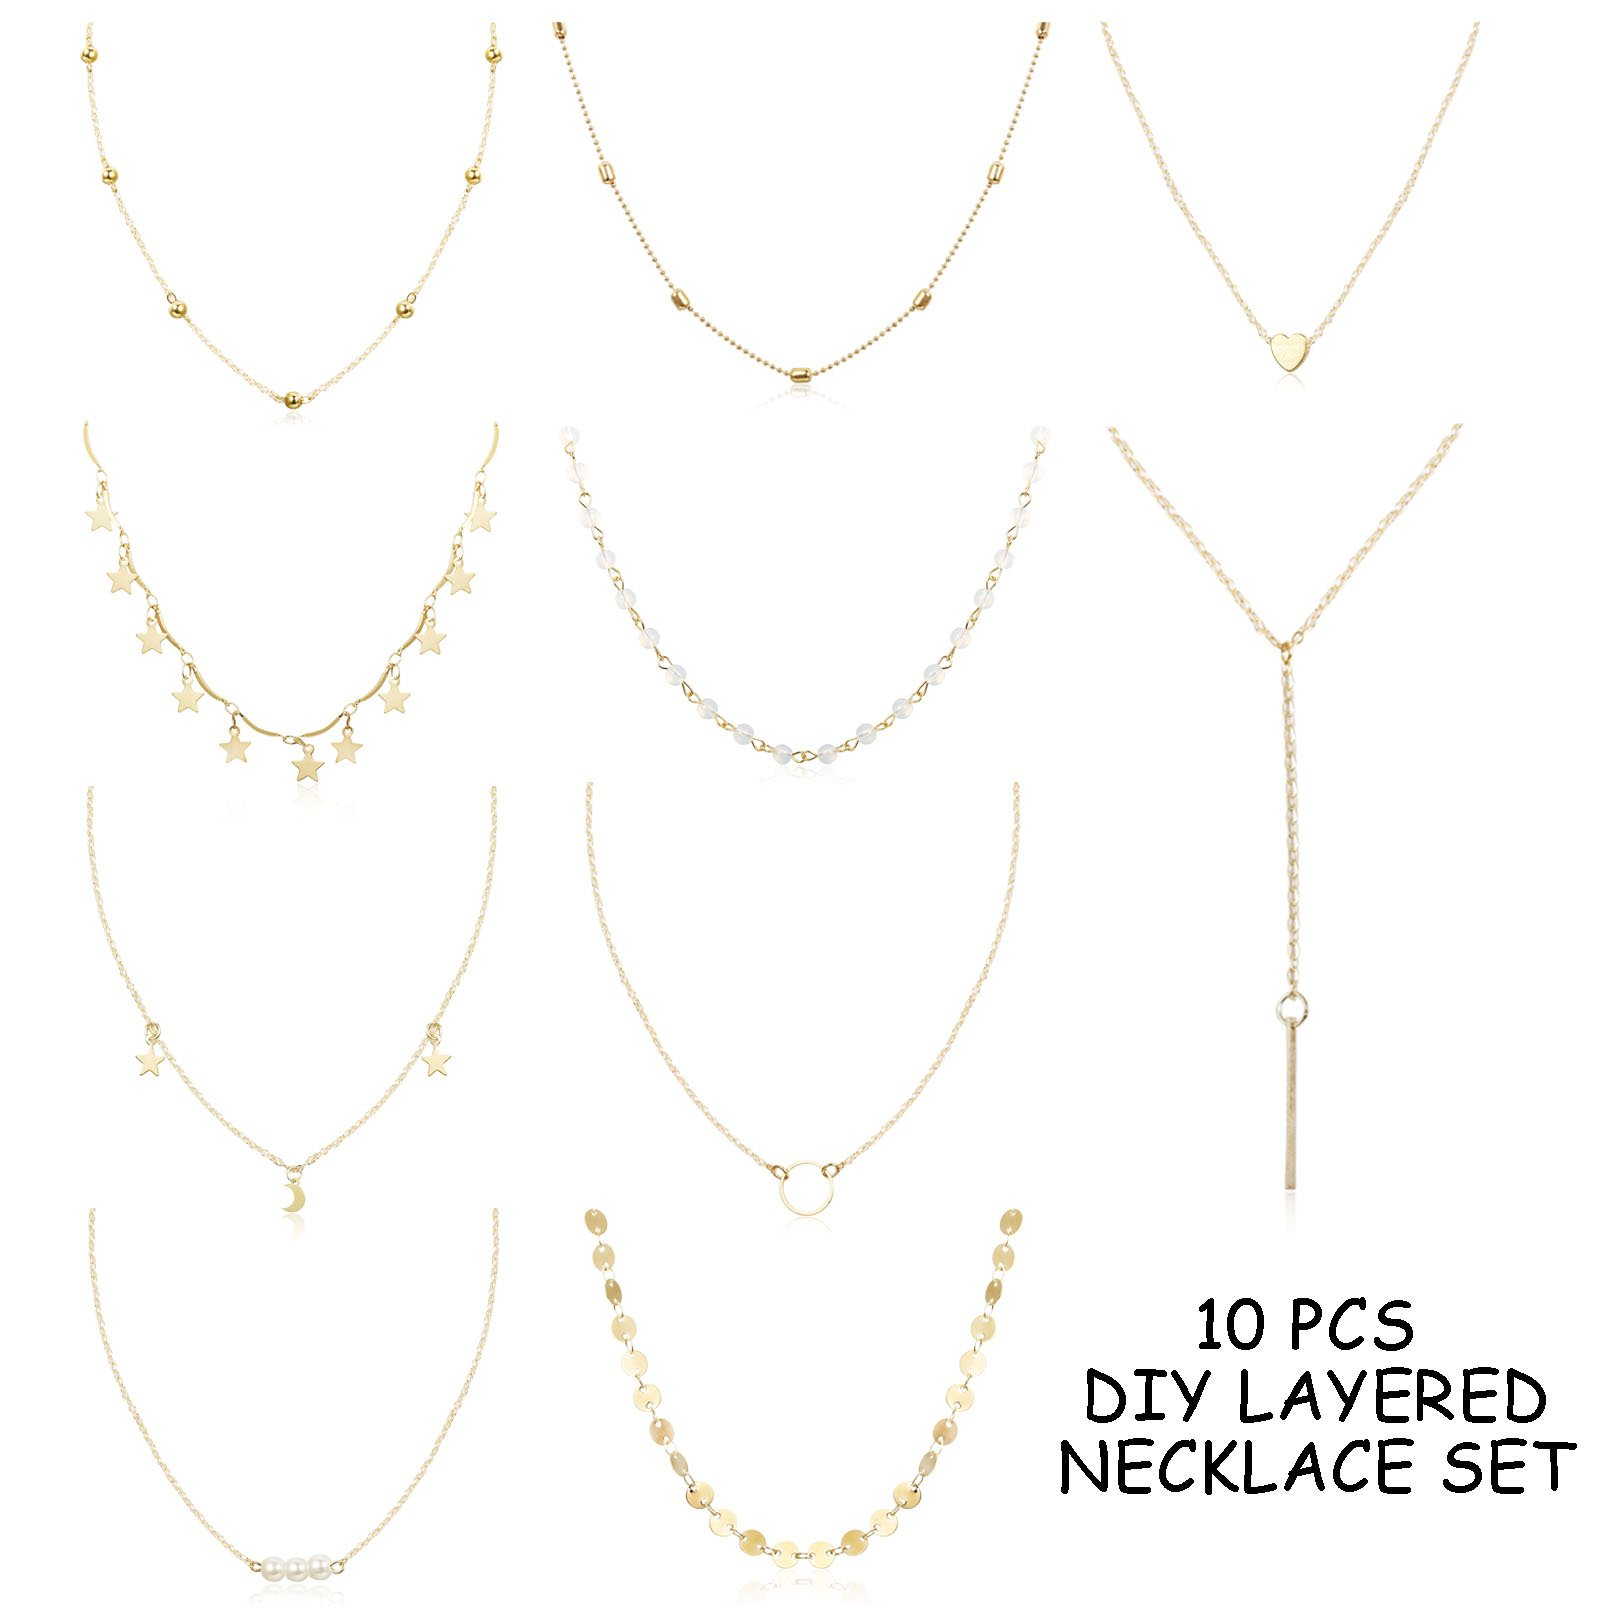 FUNRUN JEWELRY 10PCS Layered Choker Necklace for Women Girls Sexy Coin Star Multilayer Chain Necklace Set Adjustable Gold-Tone